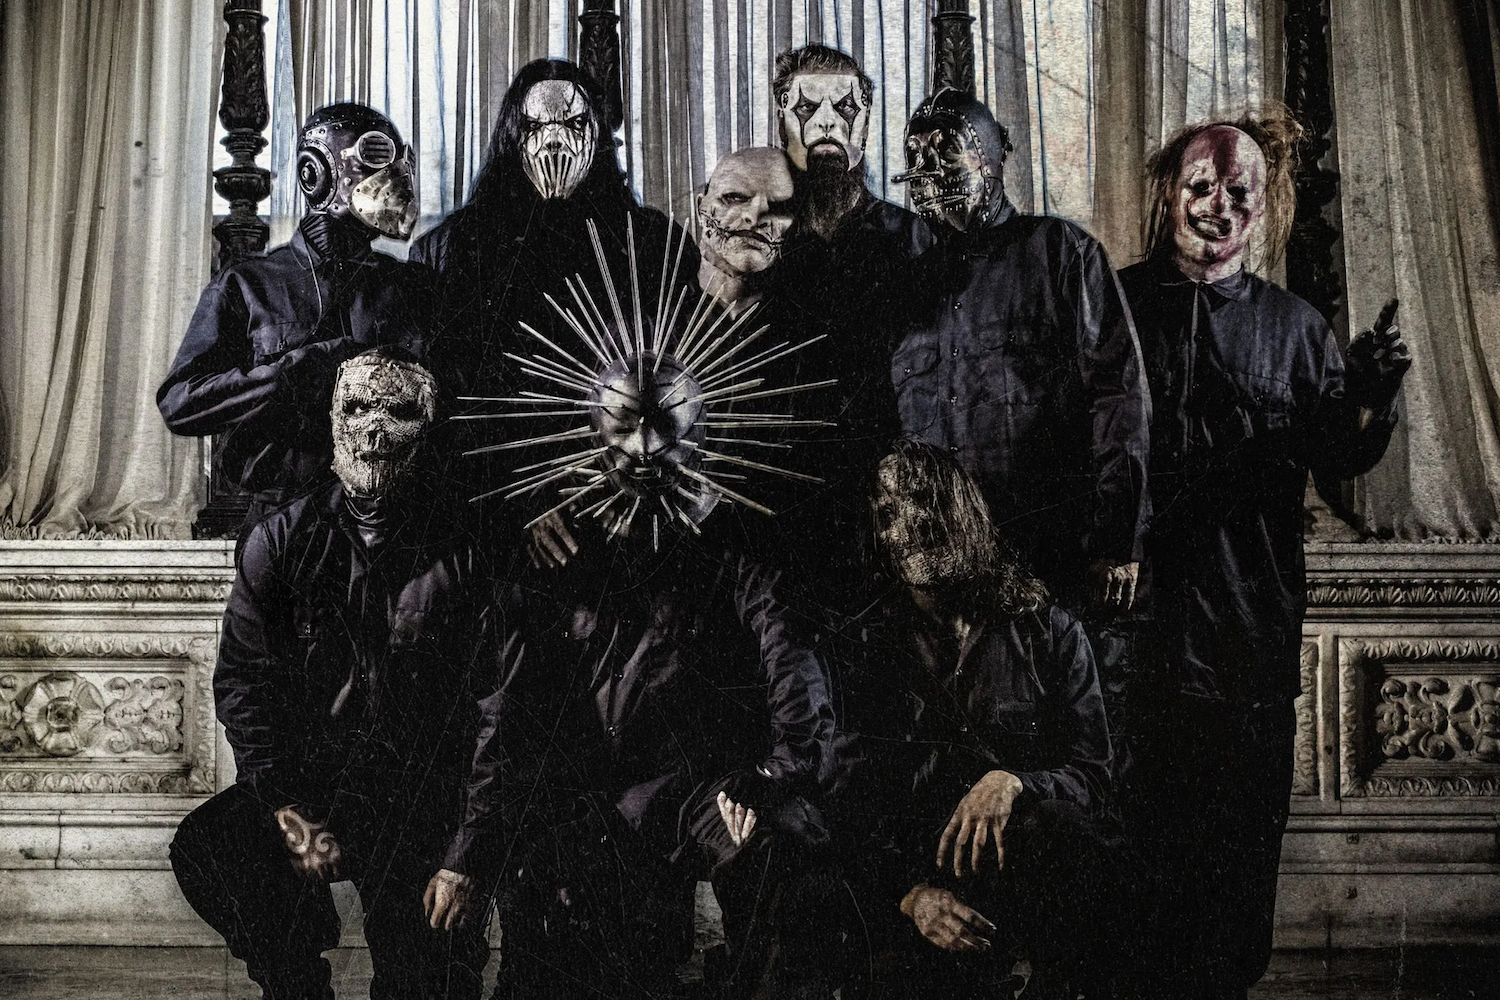 Slipknot 10 Most Anticipated Metal Albums of 2019